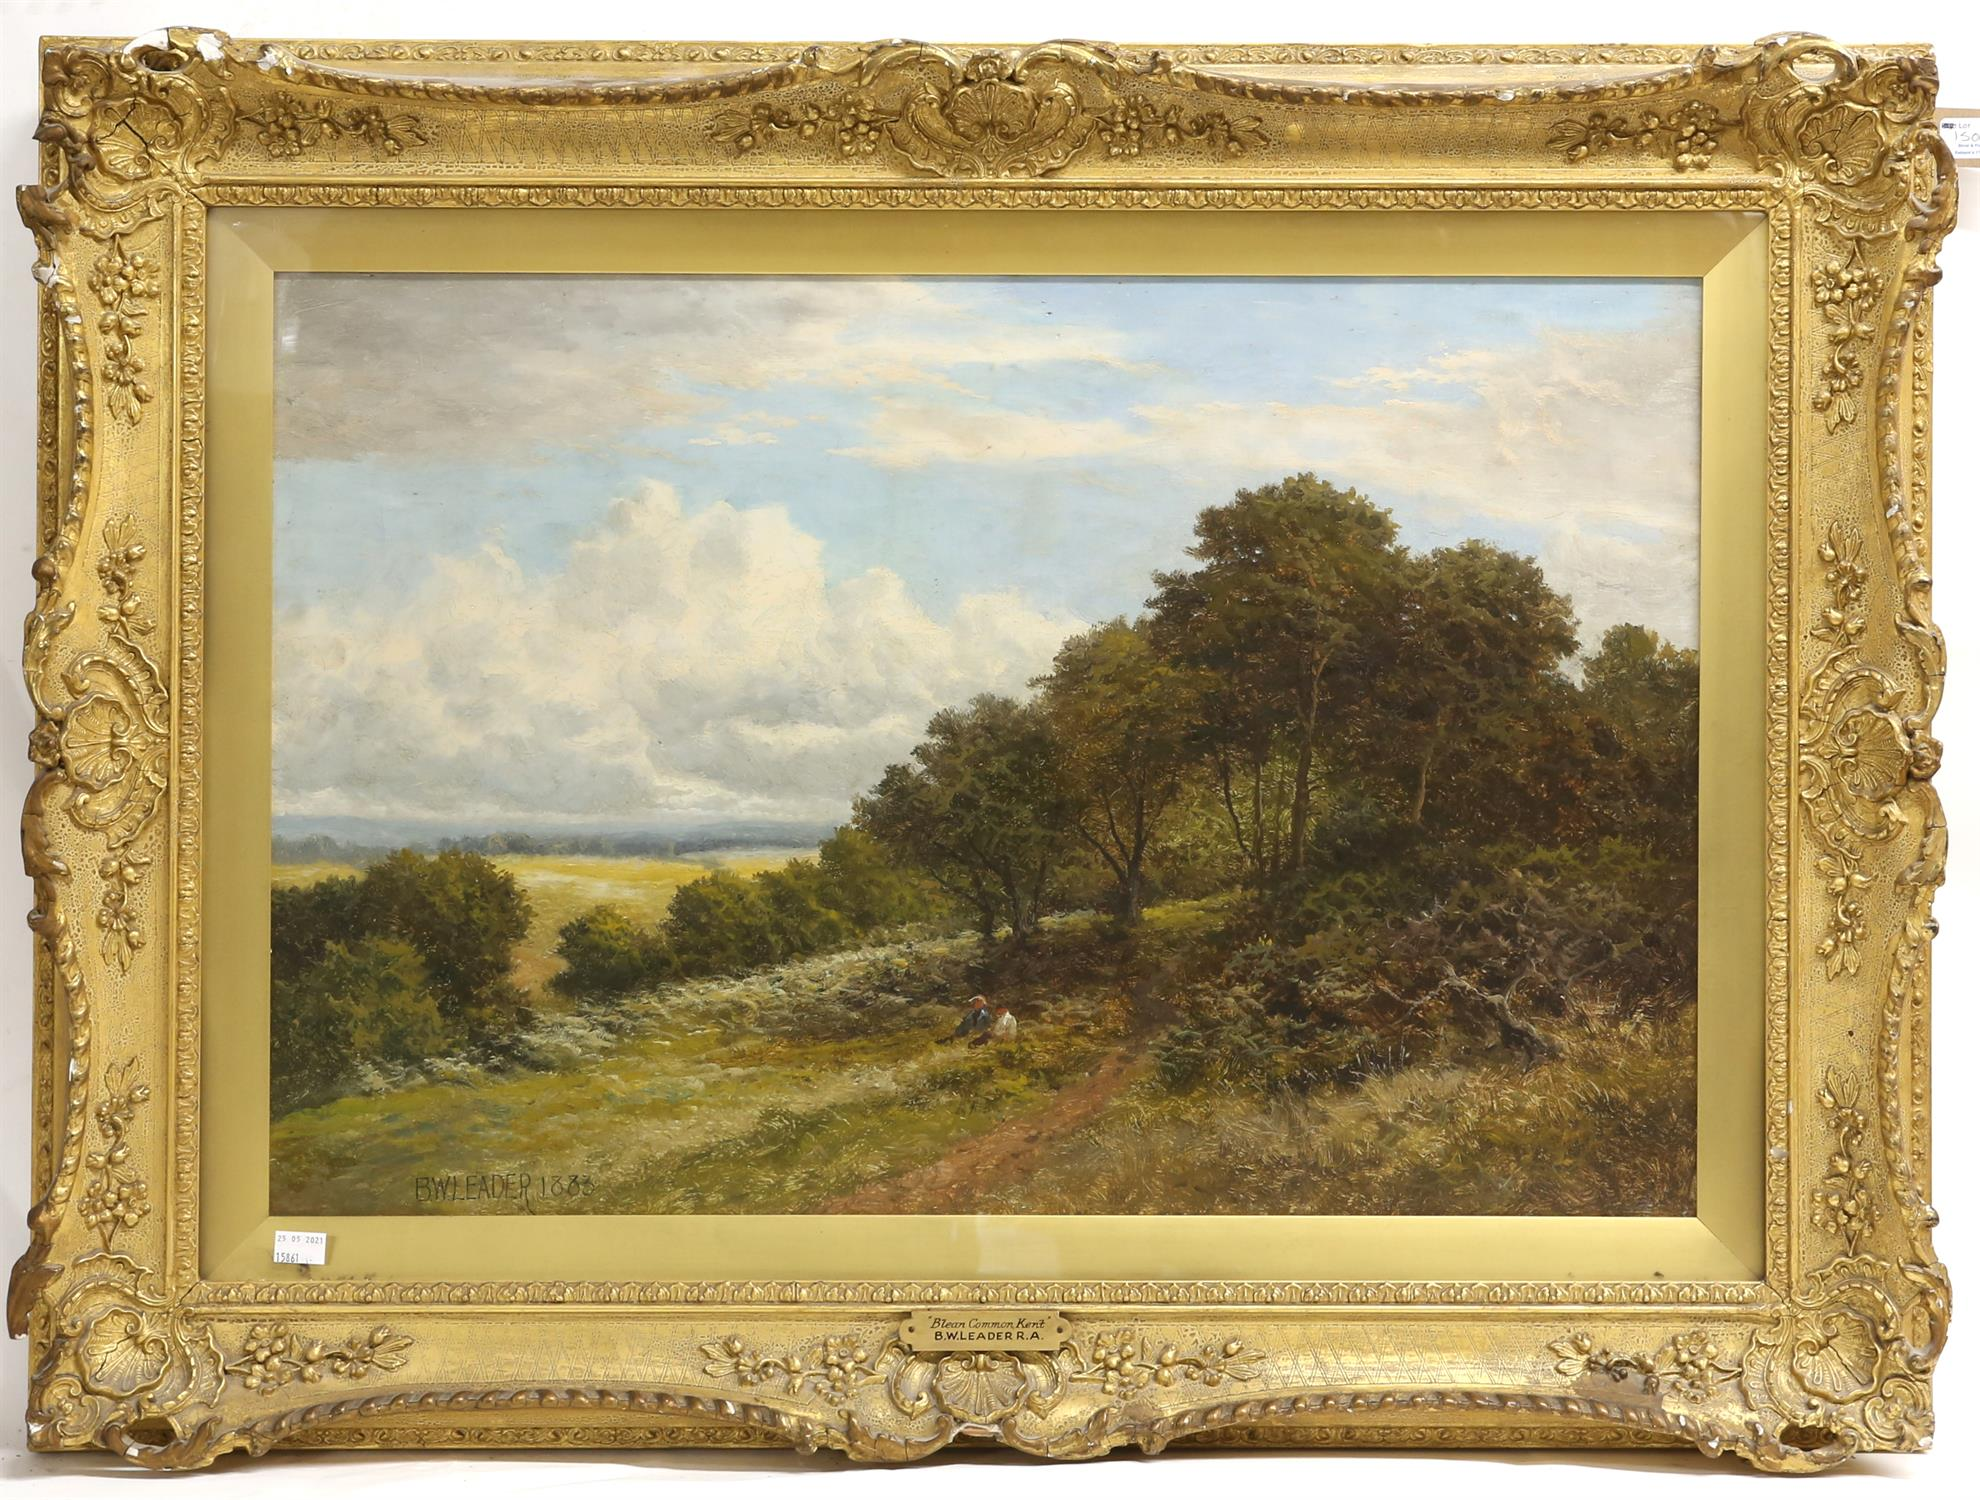 Benjamin Williams Leader RA (1831-1923), 'Blean Common, Kent', oil on canvas, signed and dated 1883